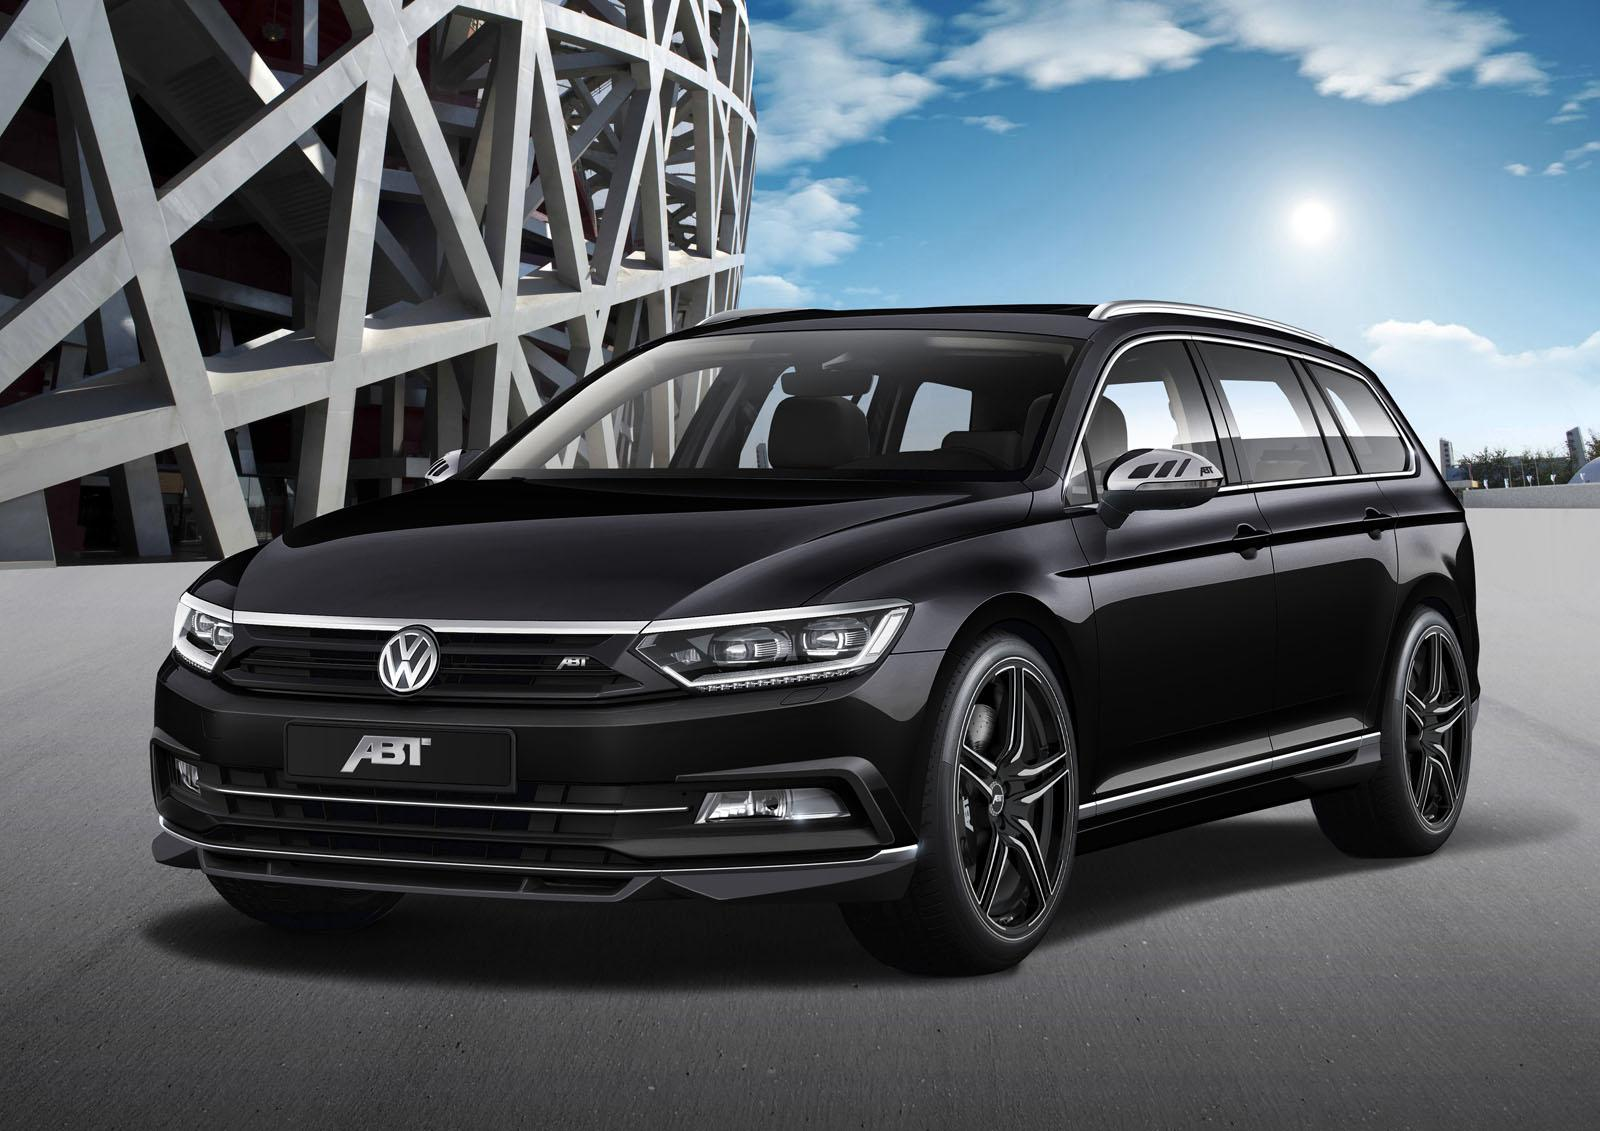 2015 Volkswagen Passat 2.0 BiTDI Tuned to 280 HP by ABT Sportsline ...